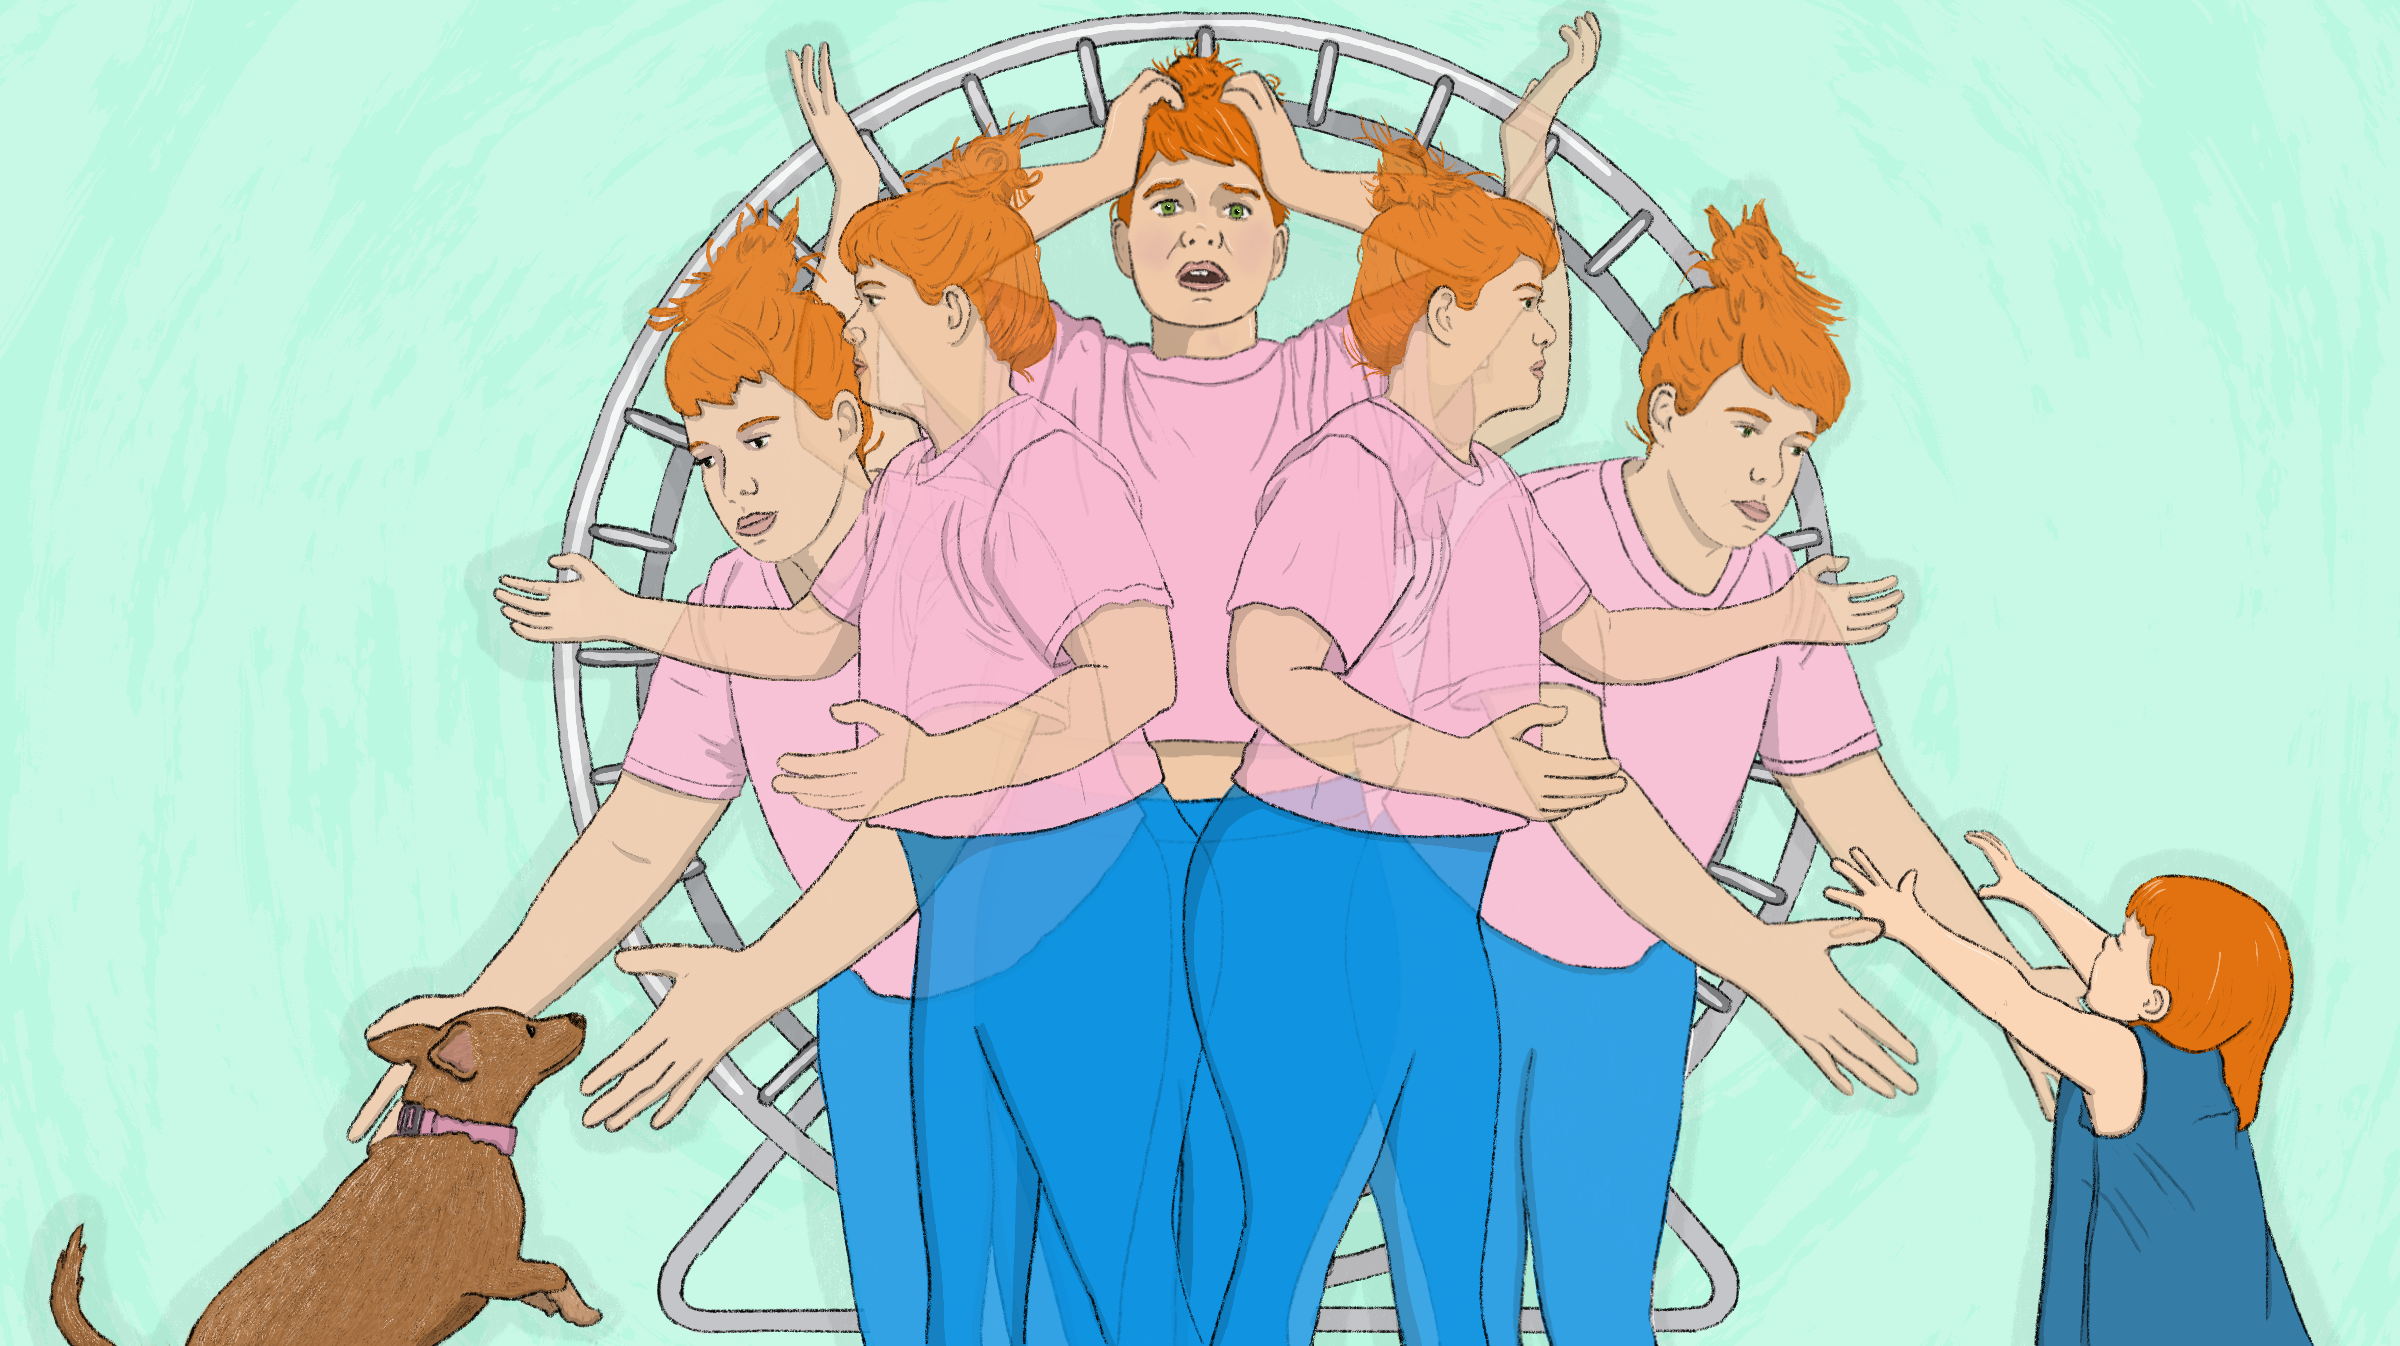 5 stages of a person holding their arms out to a puppy on the left side of the image, to standing straight with their hands on their head in the center, to holding their arms out to a toddler at the right side of the image. In the background is a huge metal hamster wheel.